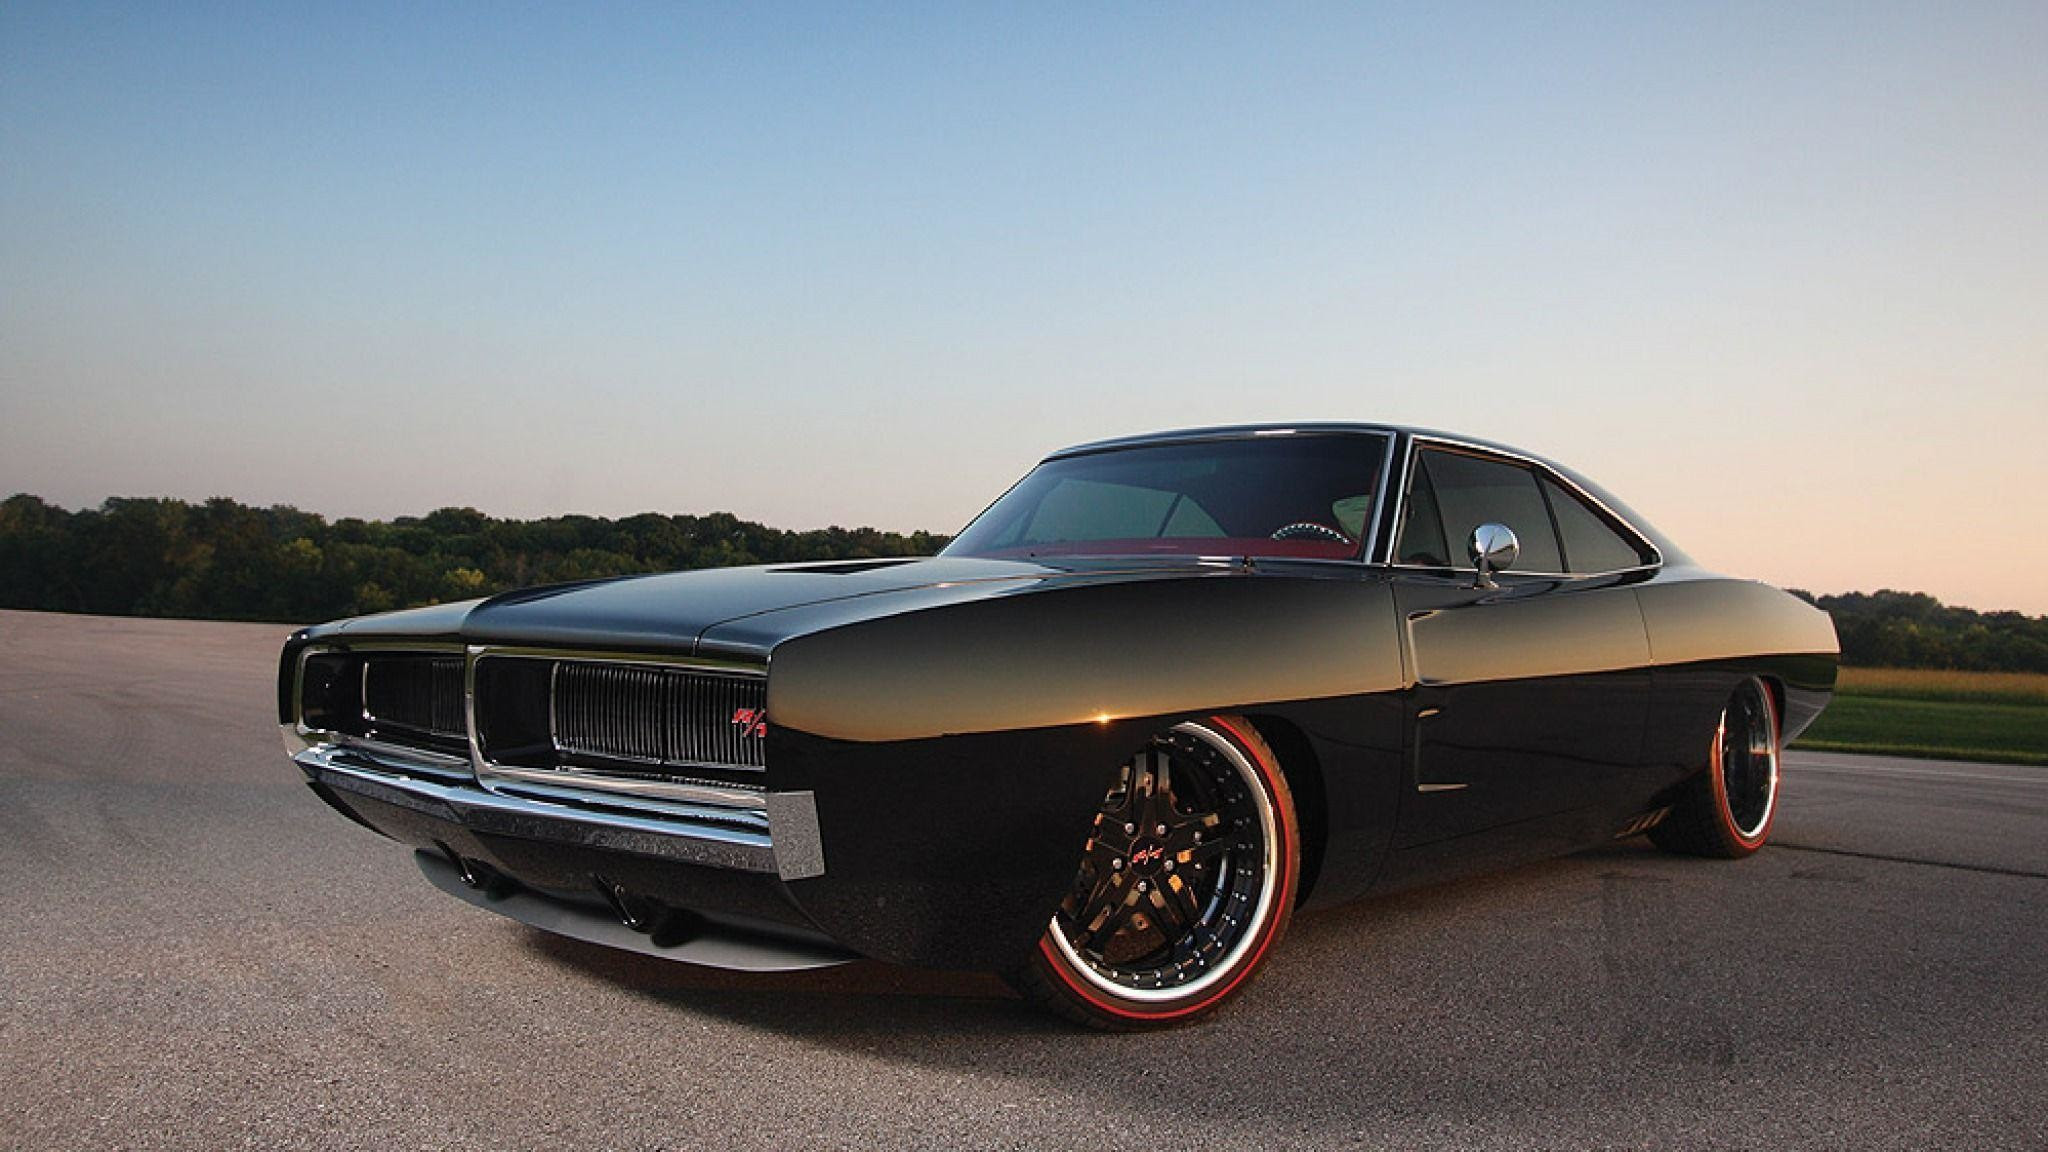 1970 Dodge Charger Rt Wallpaper 71 Images